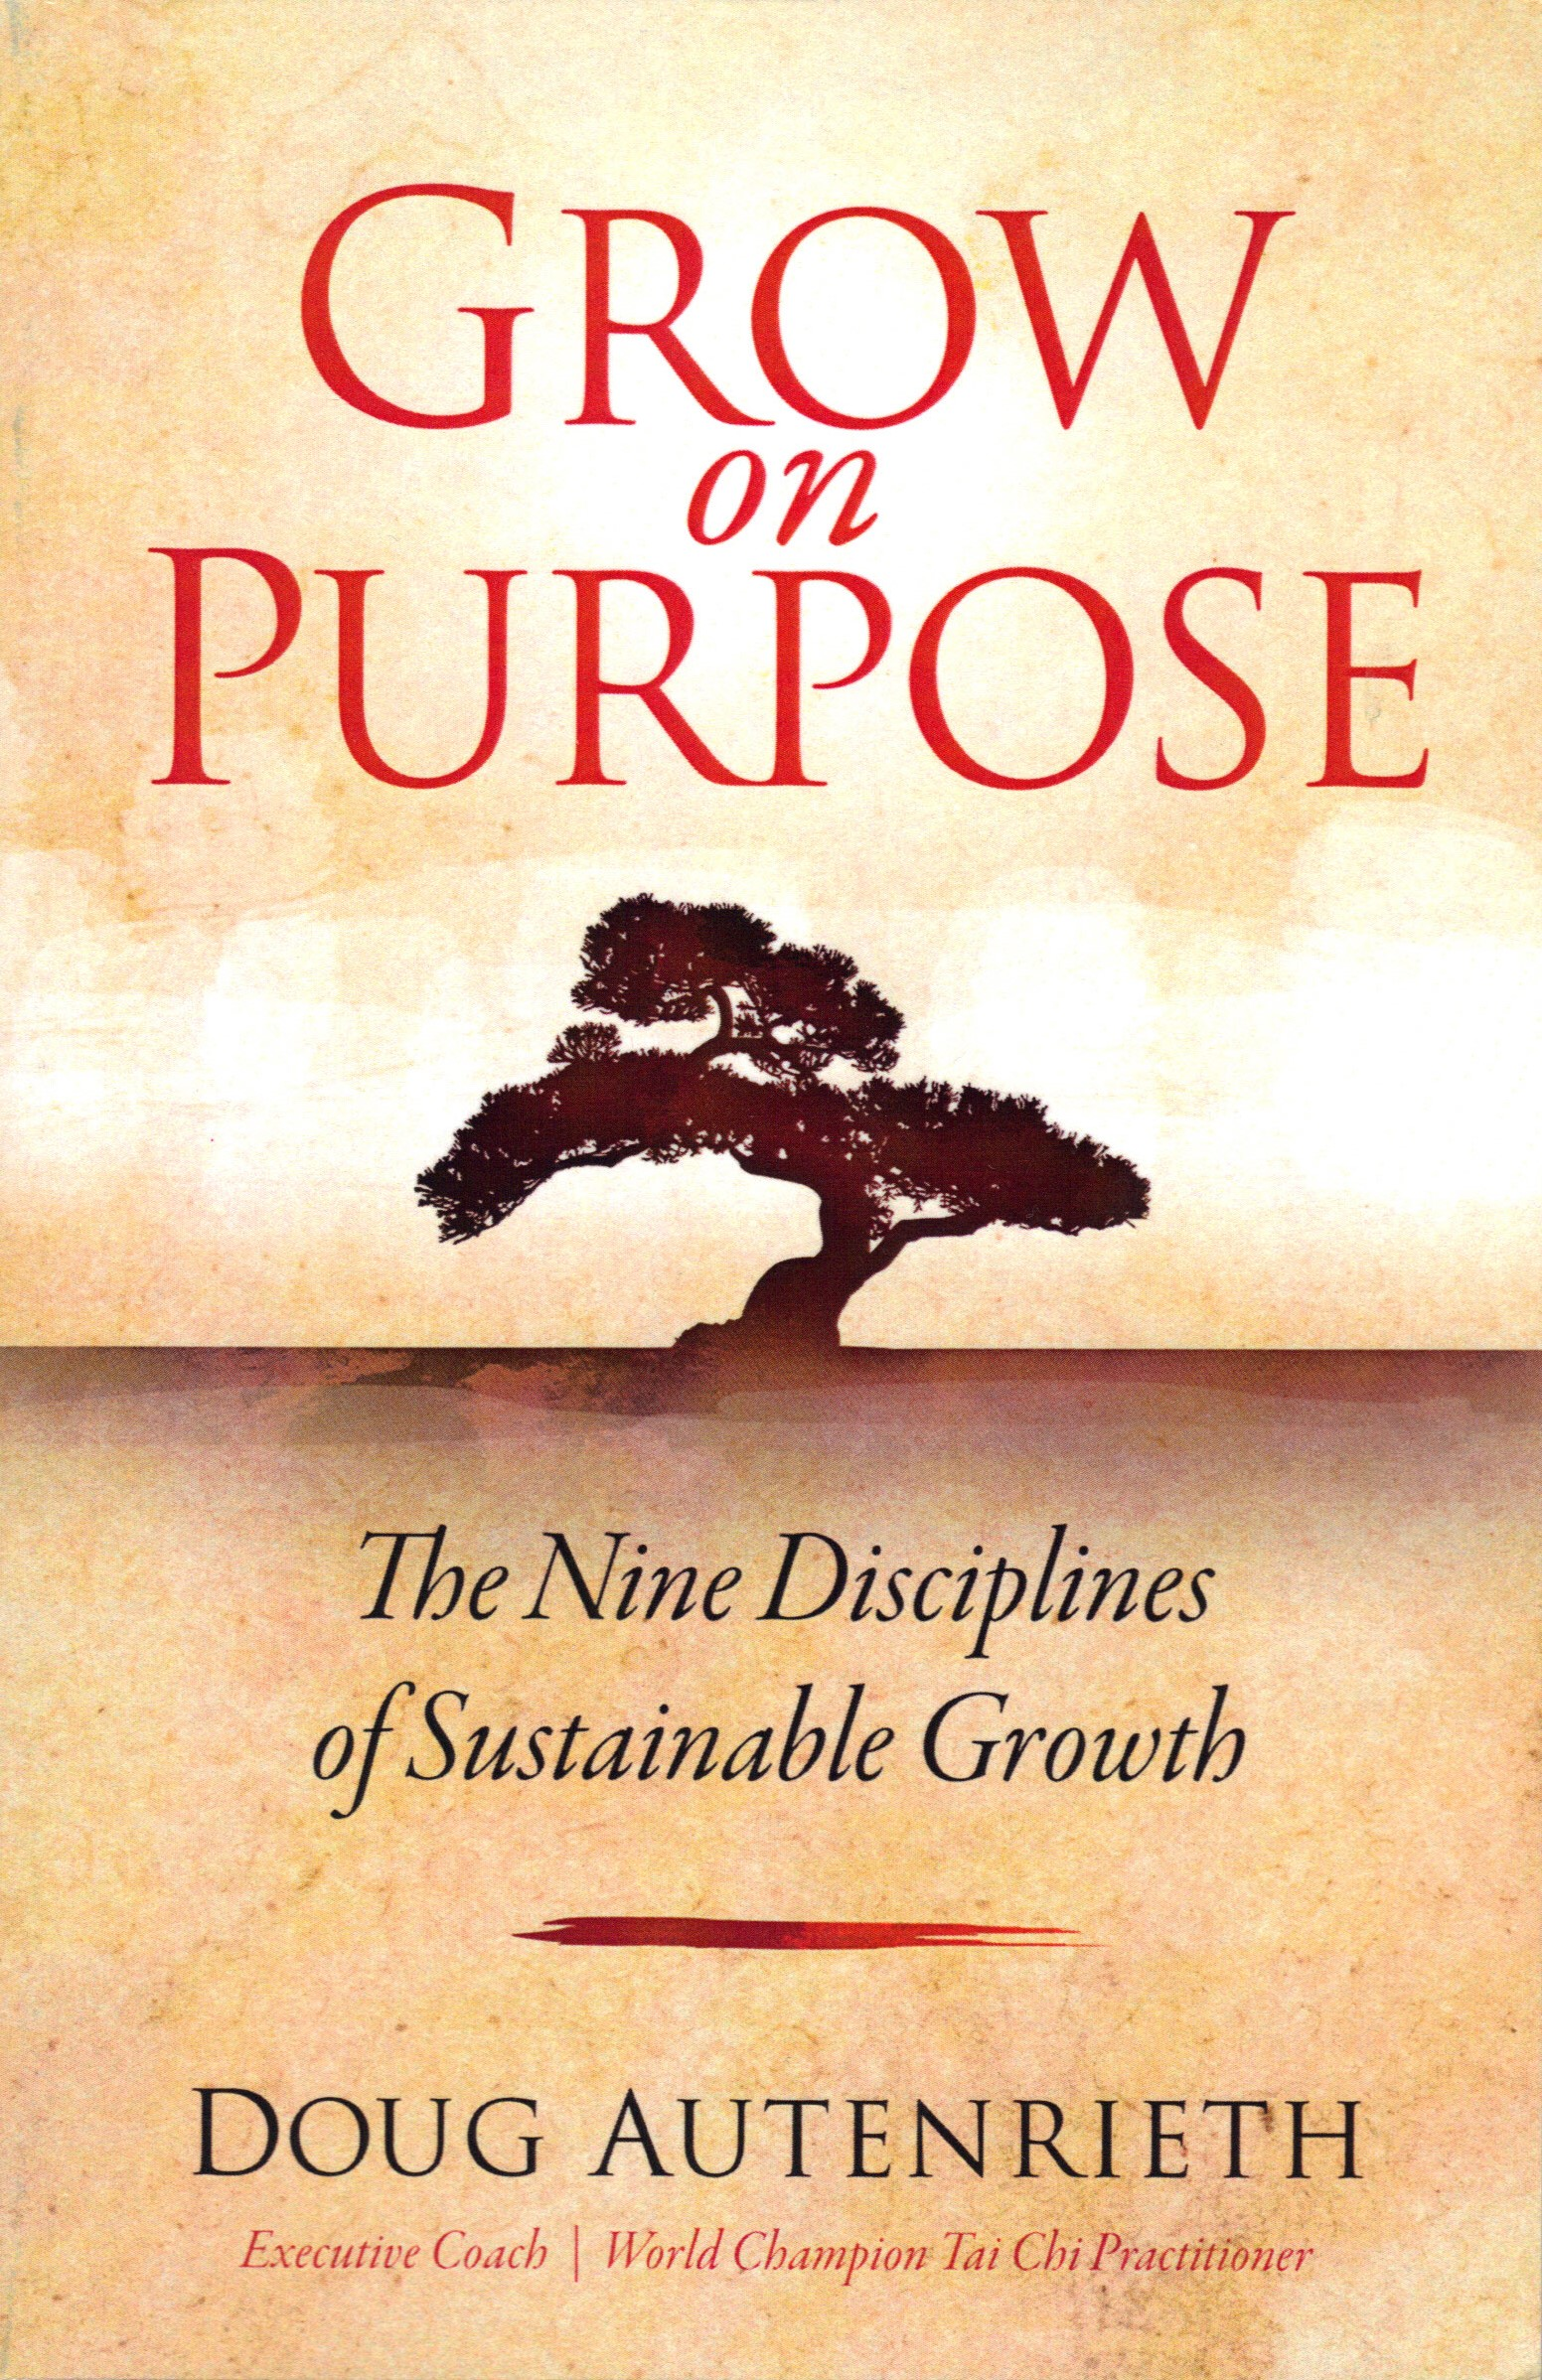 Grow on Purpose by Doug Autenrieth